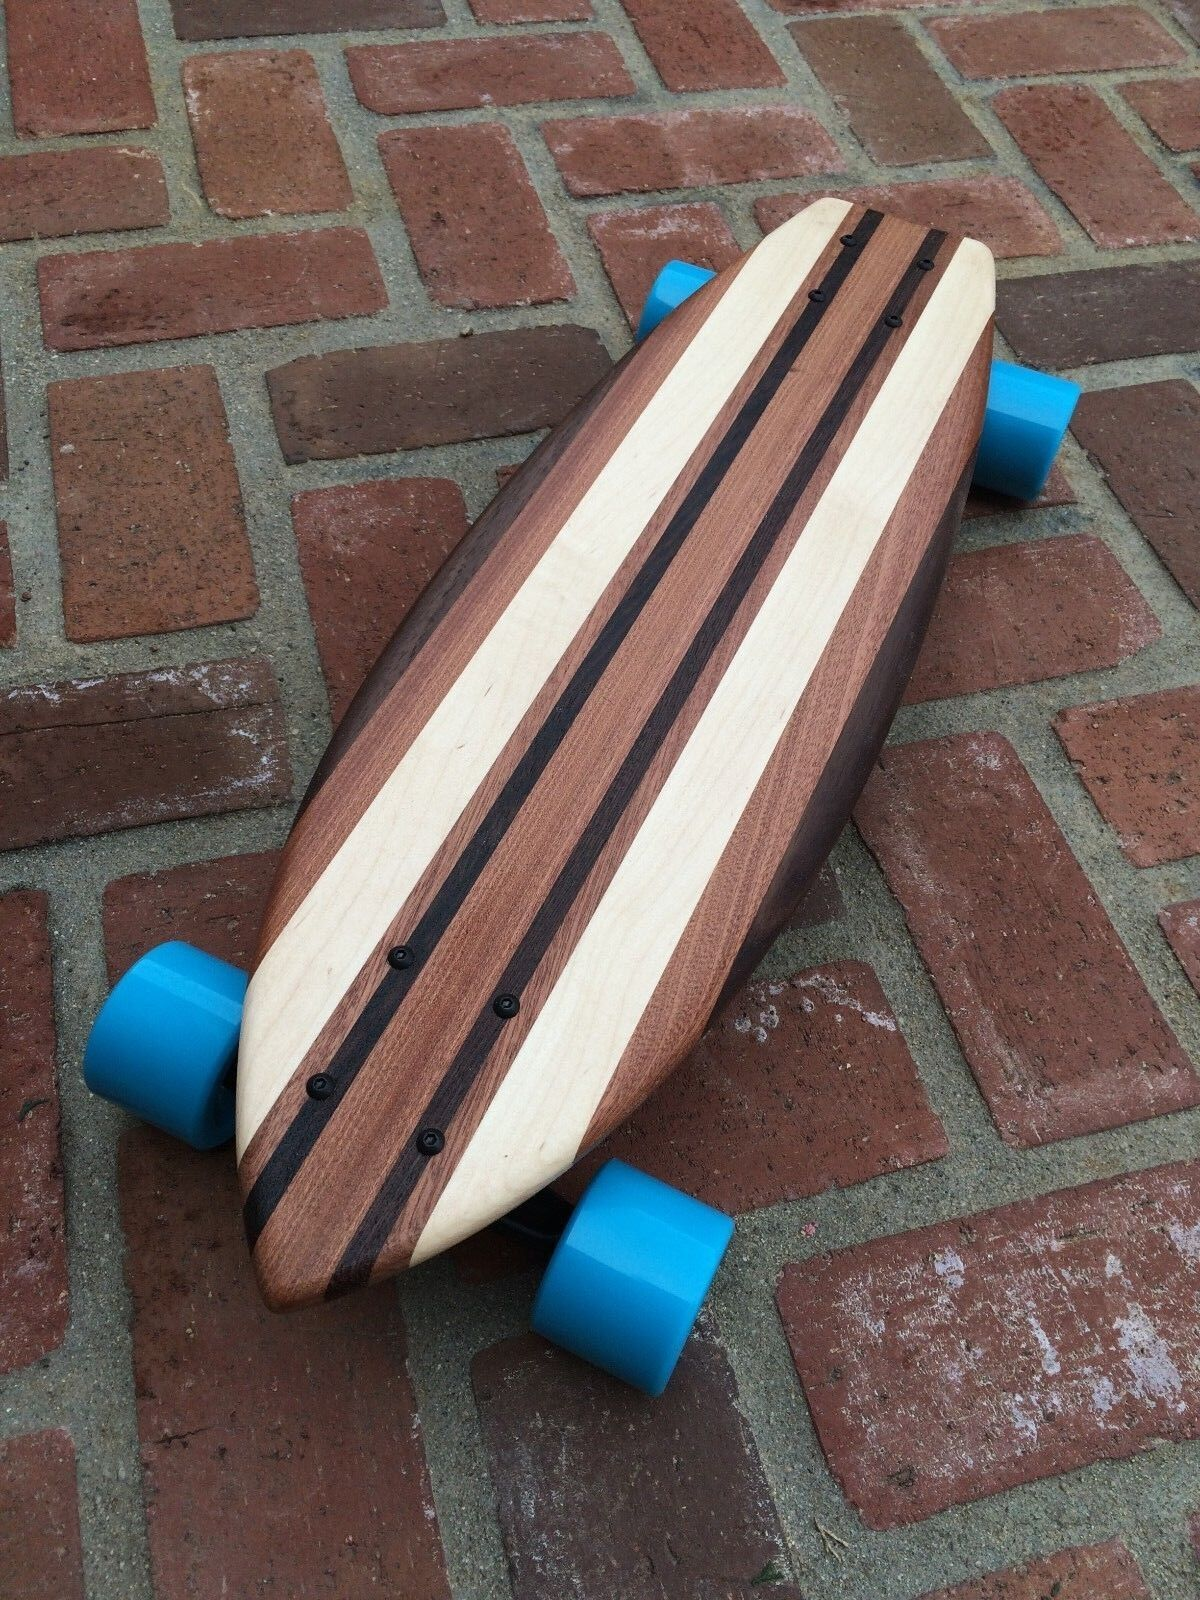 S board  made of Solid Wood -  Lanikai  classic look  on sale 70% off